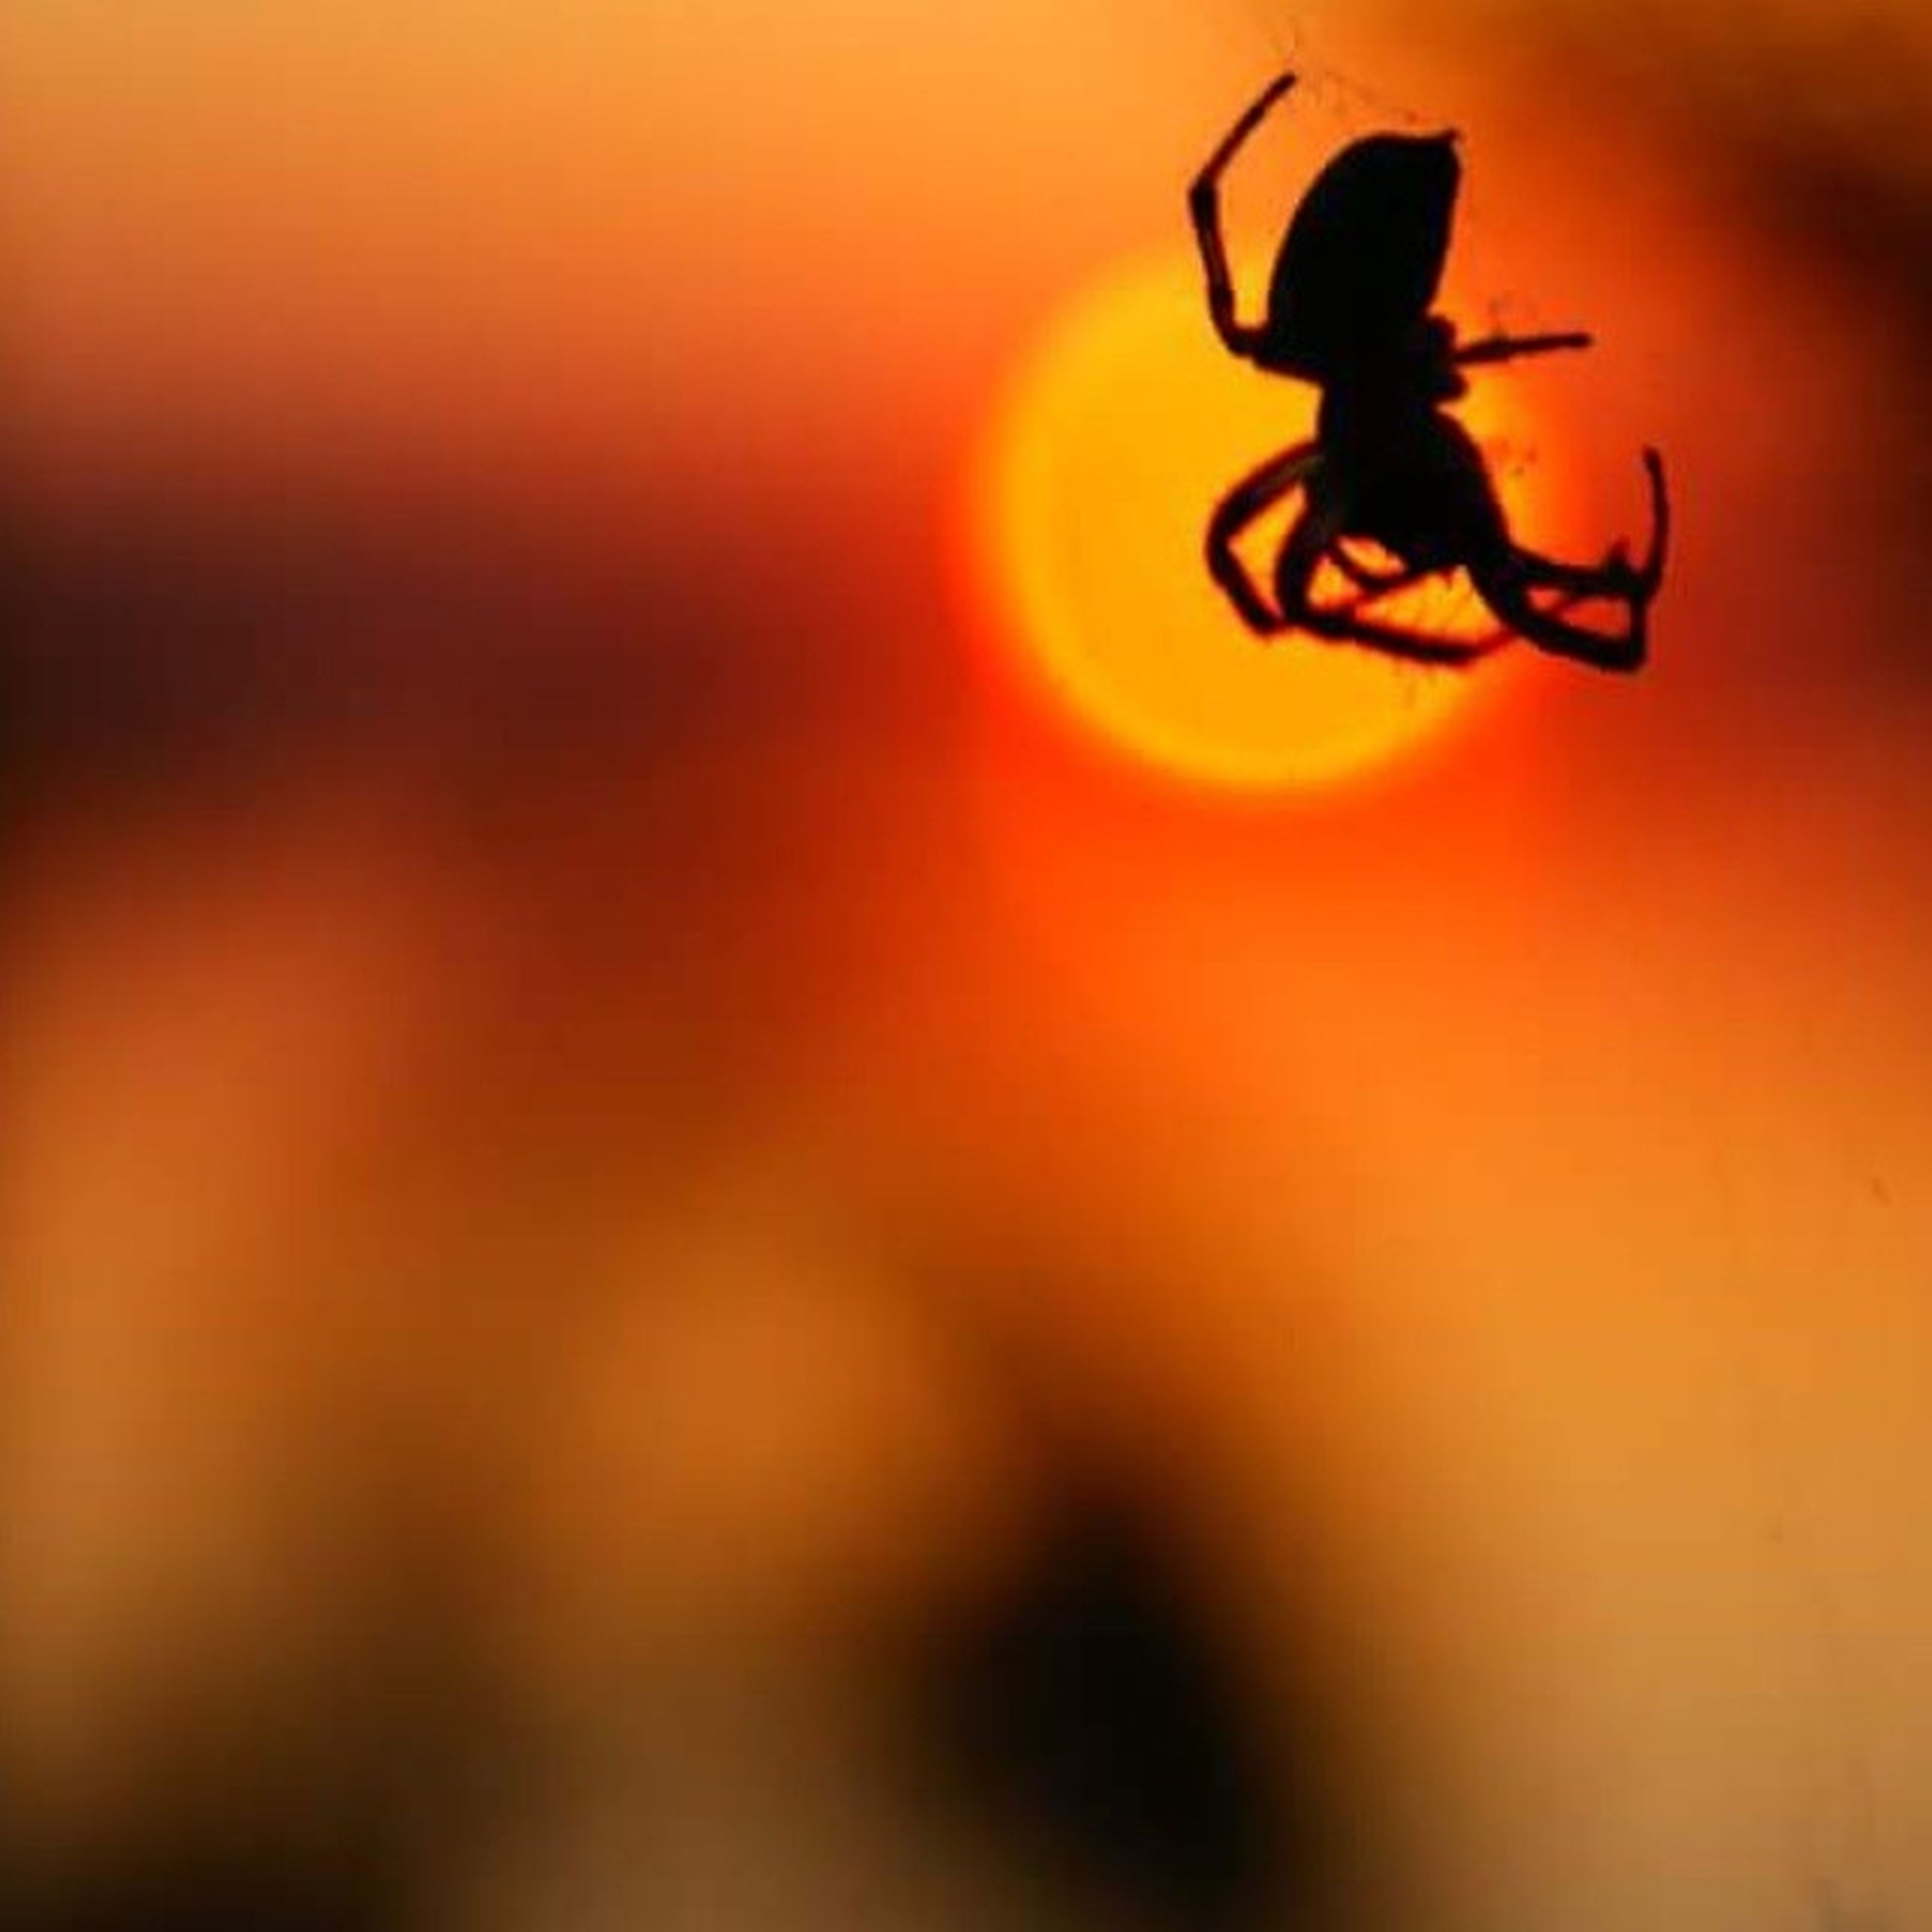 silhouette, mid-air, one person, close-up, outdoors, day, people, only men